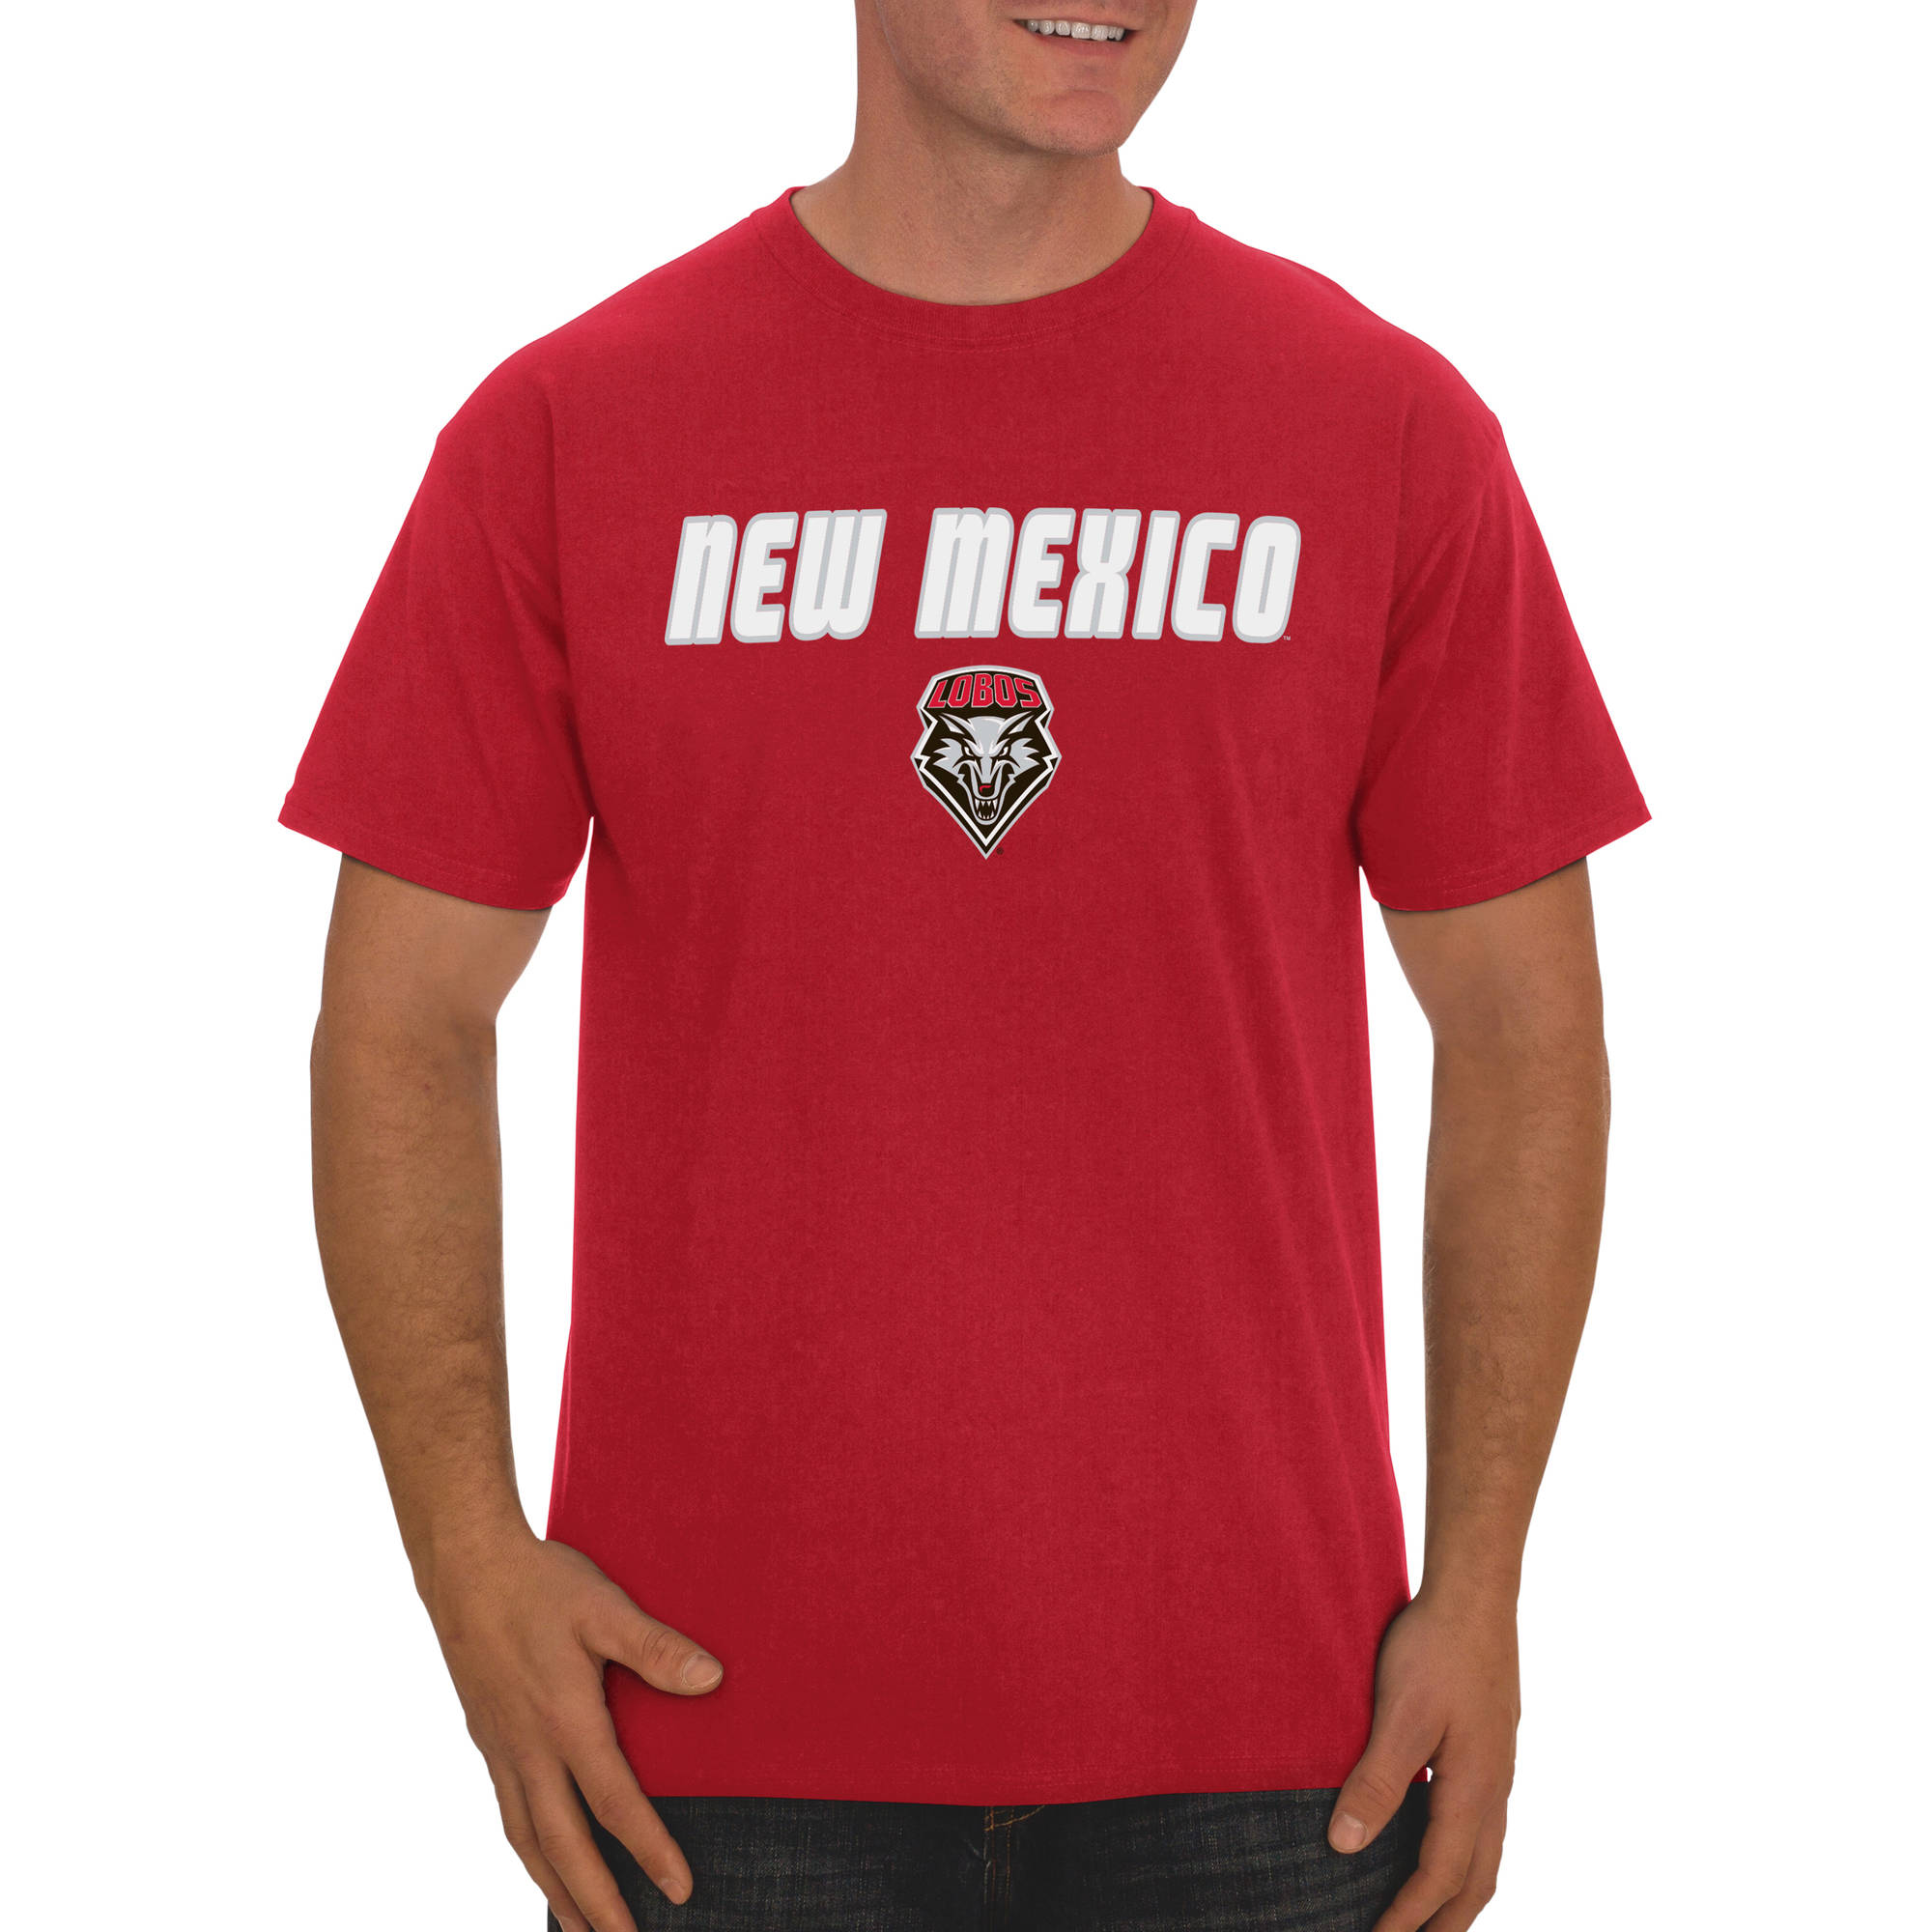 Russell NCAA New Mexico Lobos Men's Classic Cotton T-Shirt